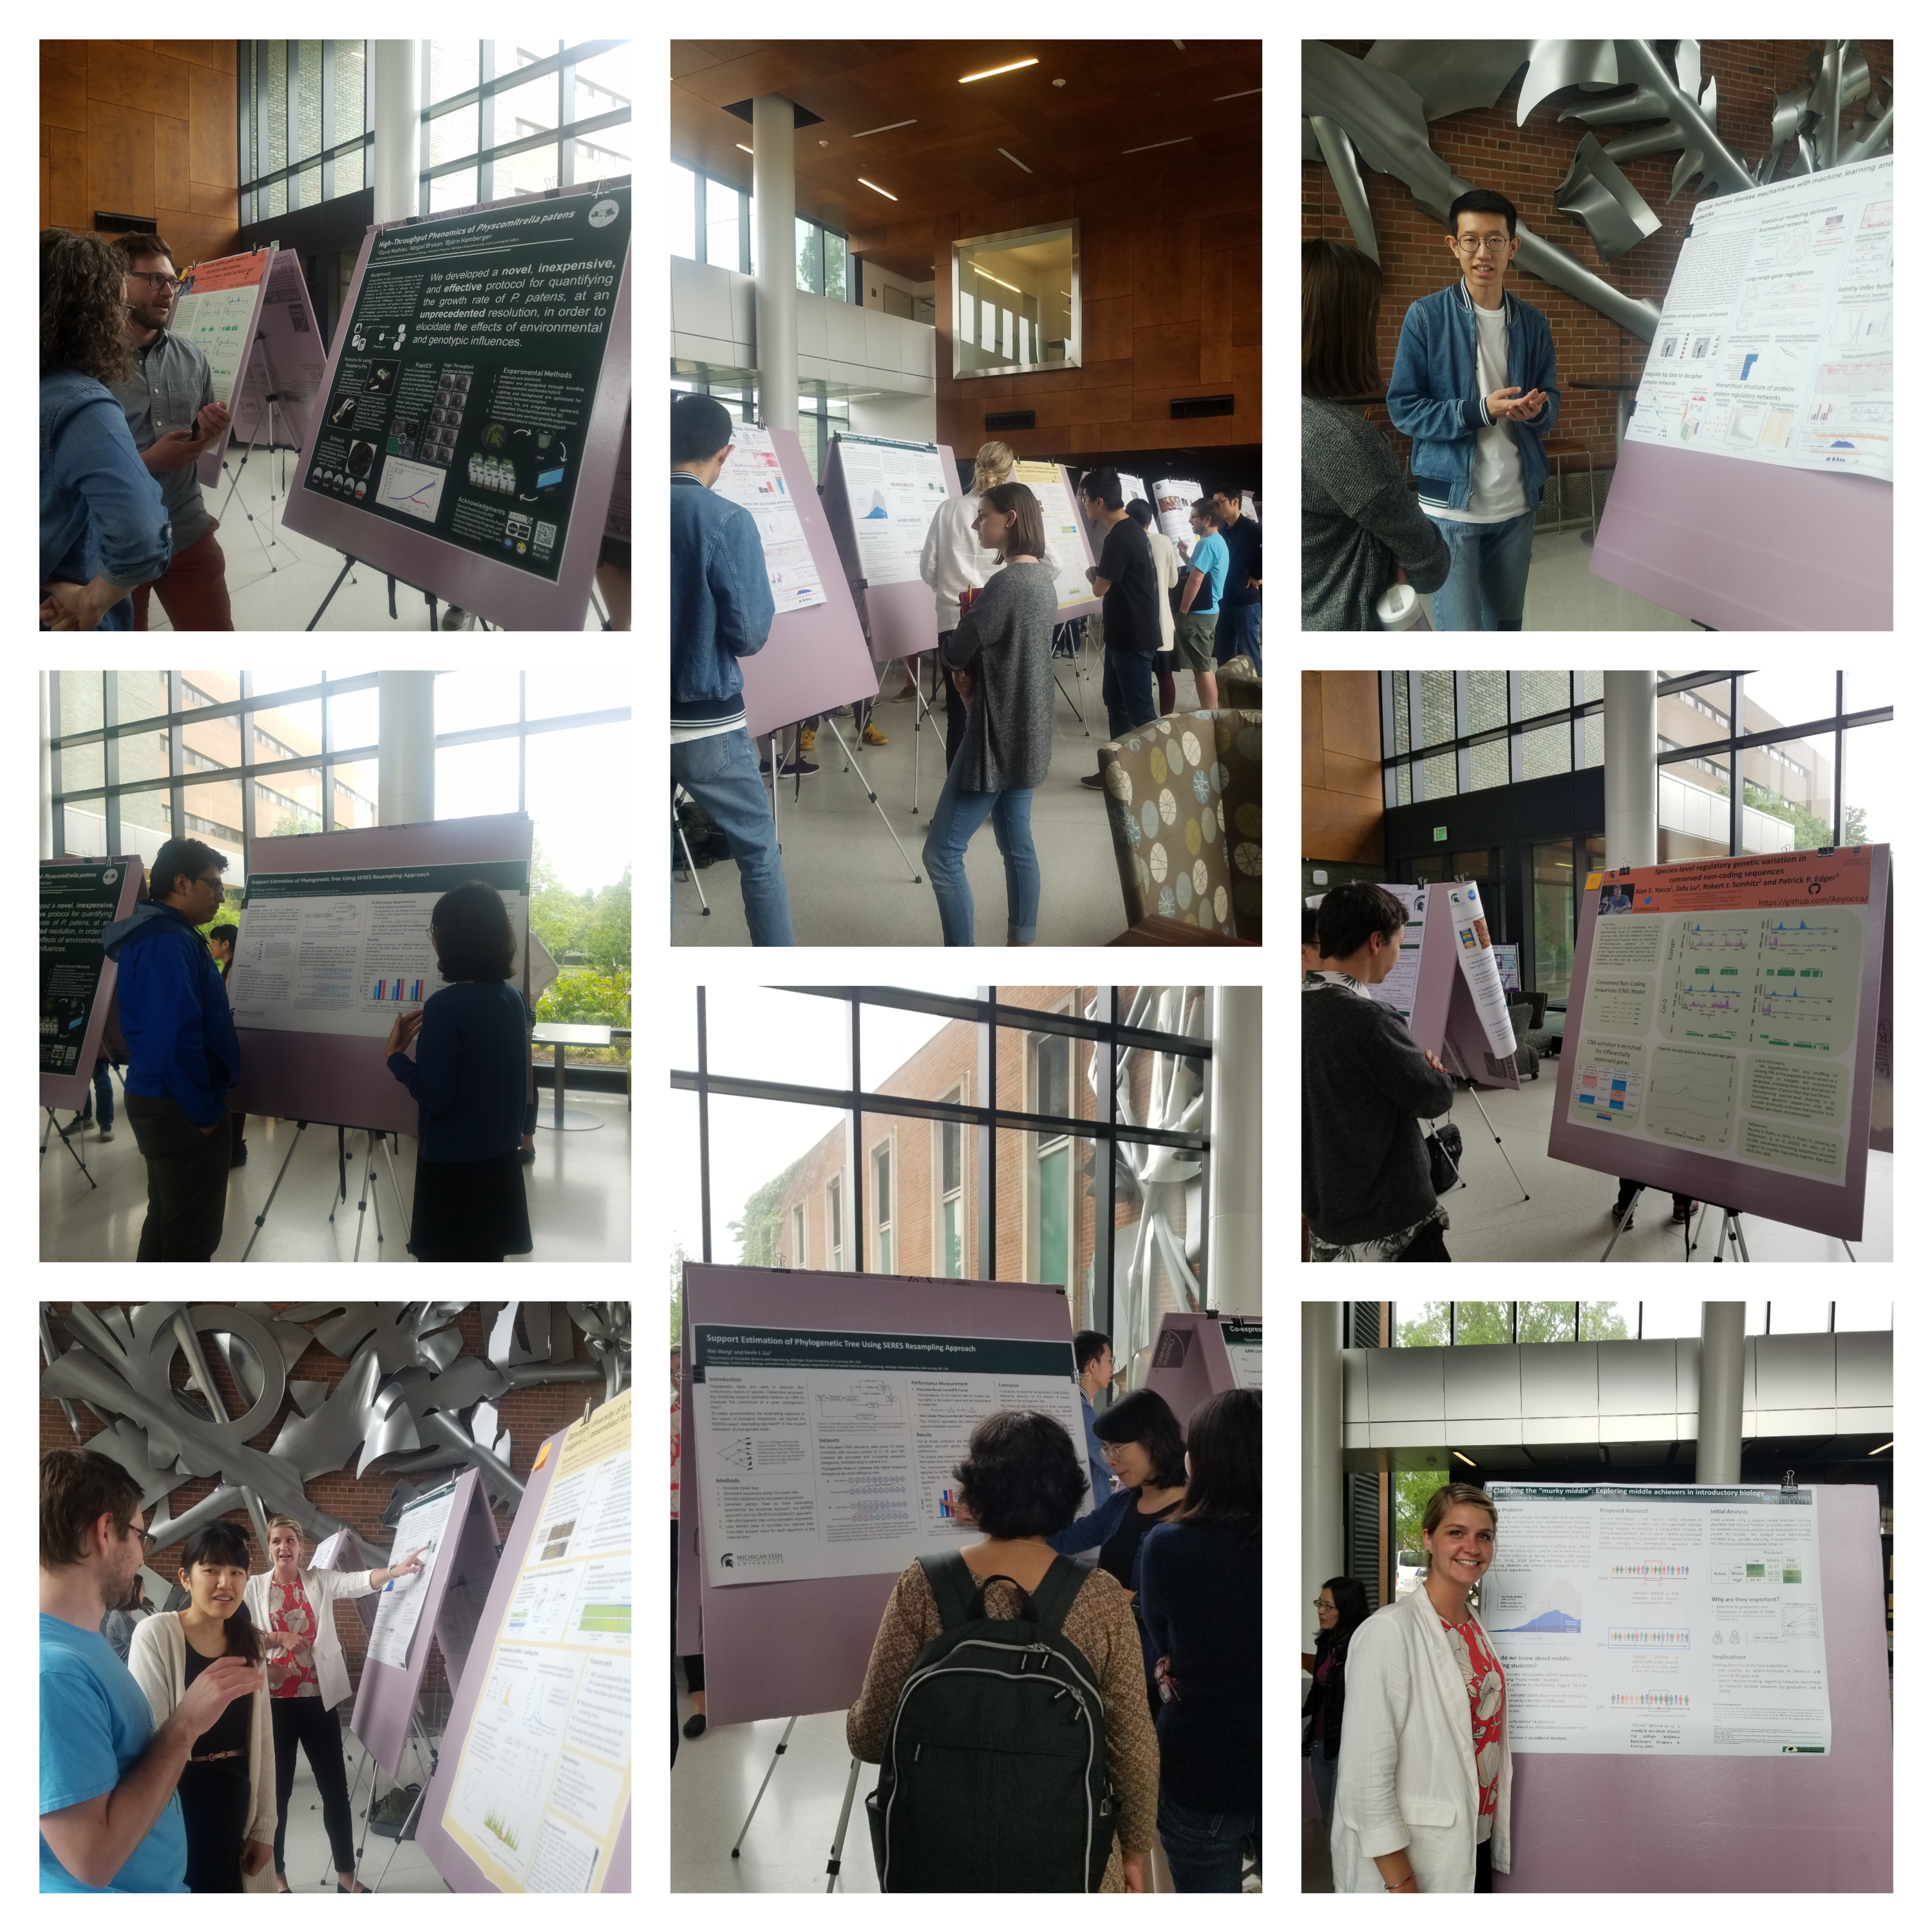 poster session image